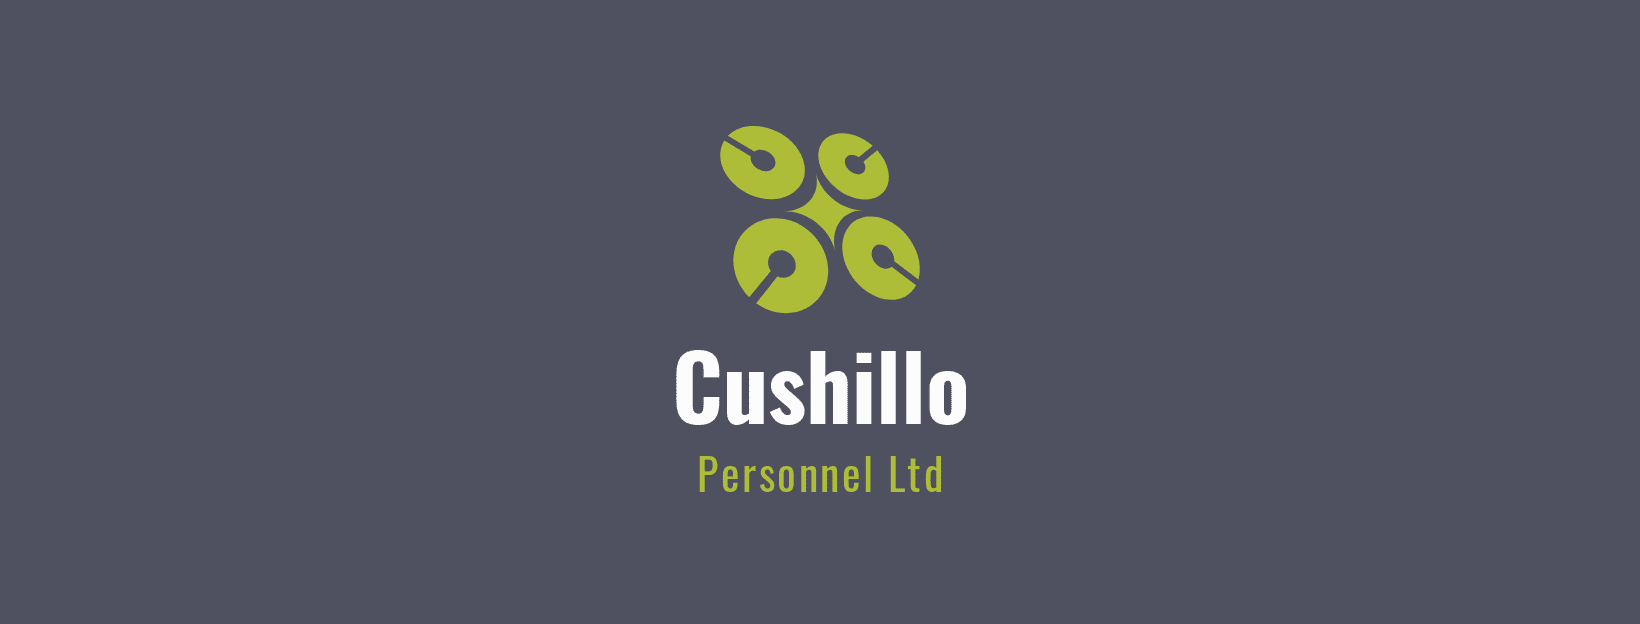 Cushillo Personnel